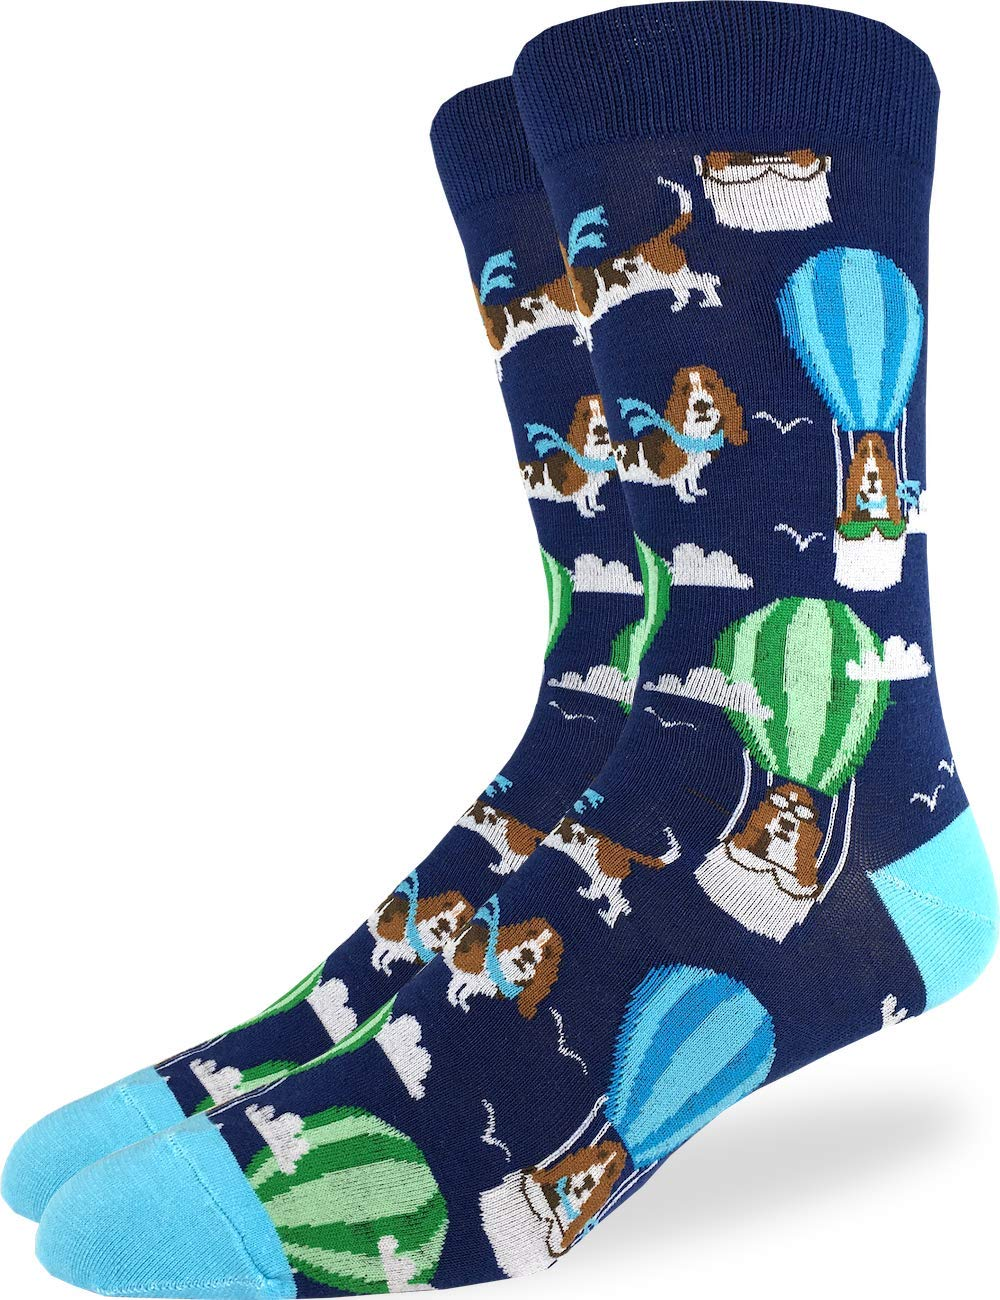 Good Luck Sock Men's Basset Hound in Air Balloon Socks - Blue Shoe Size 7-12